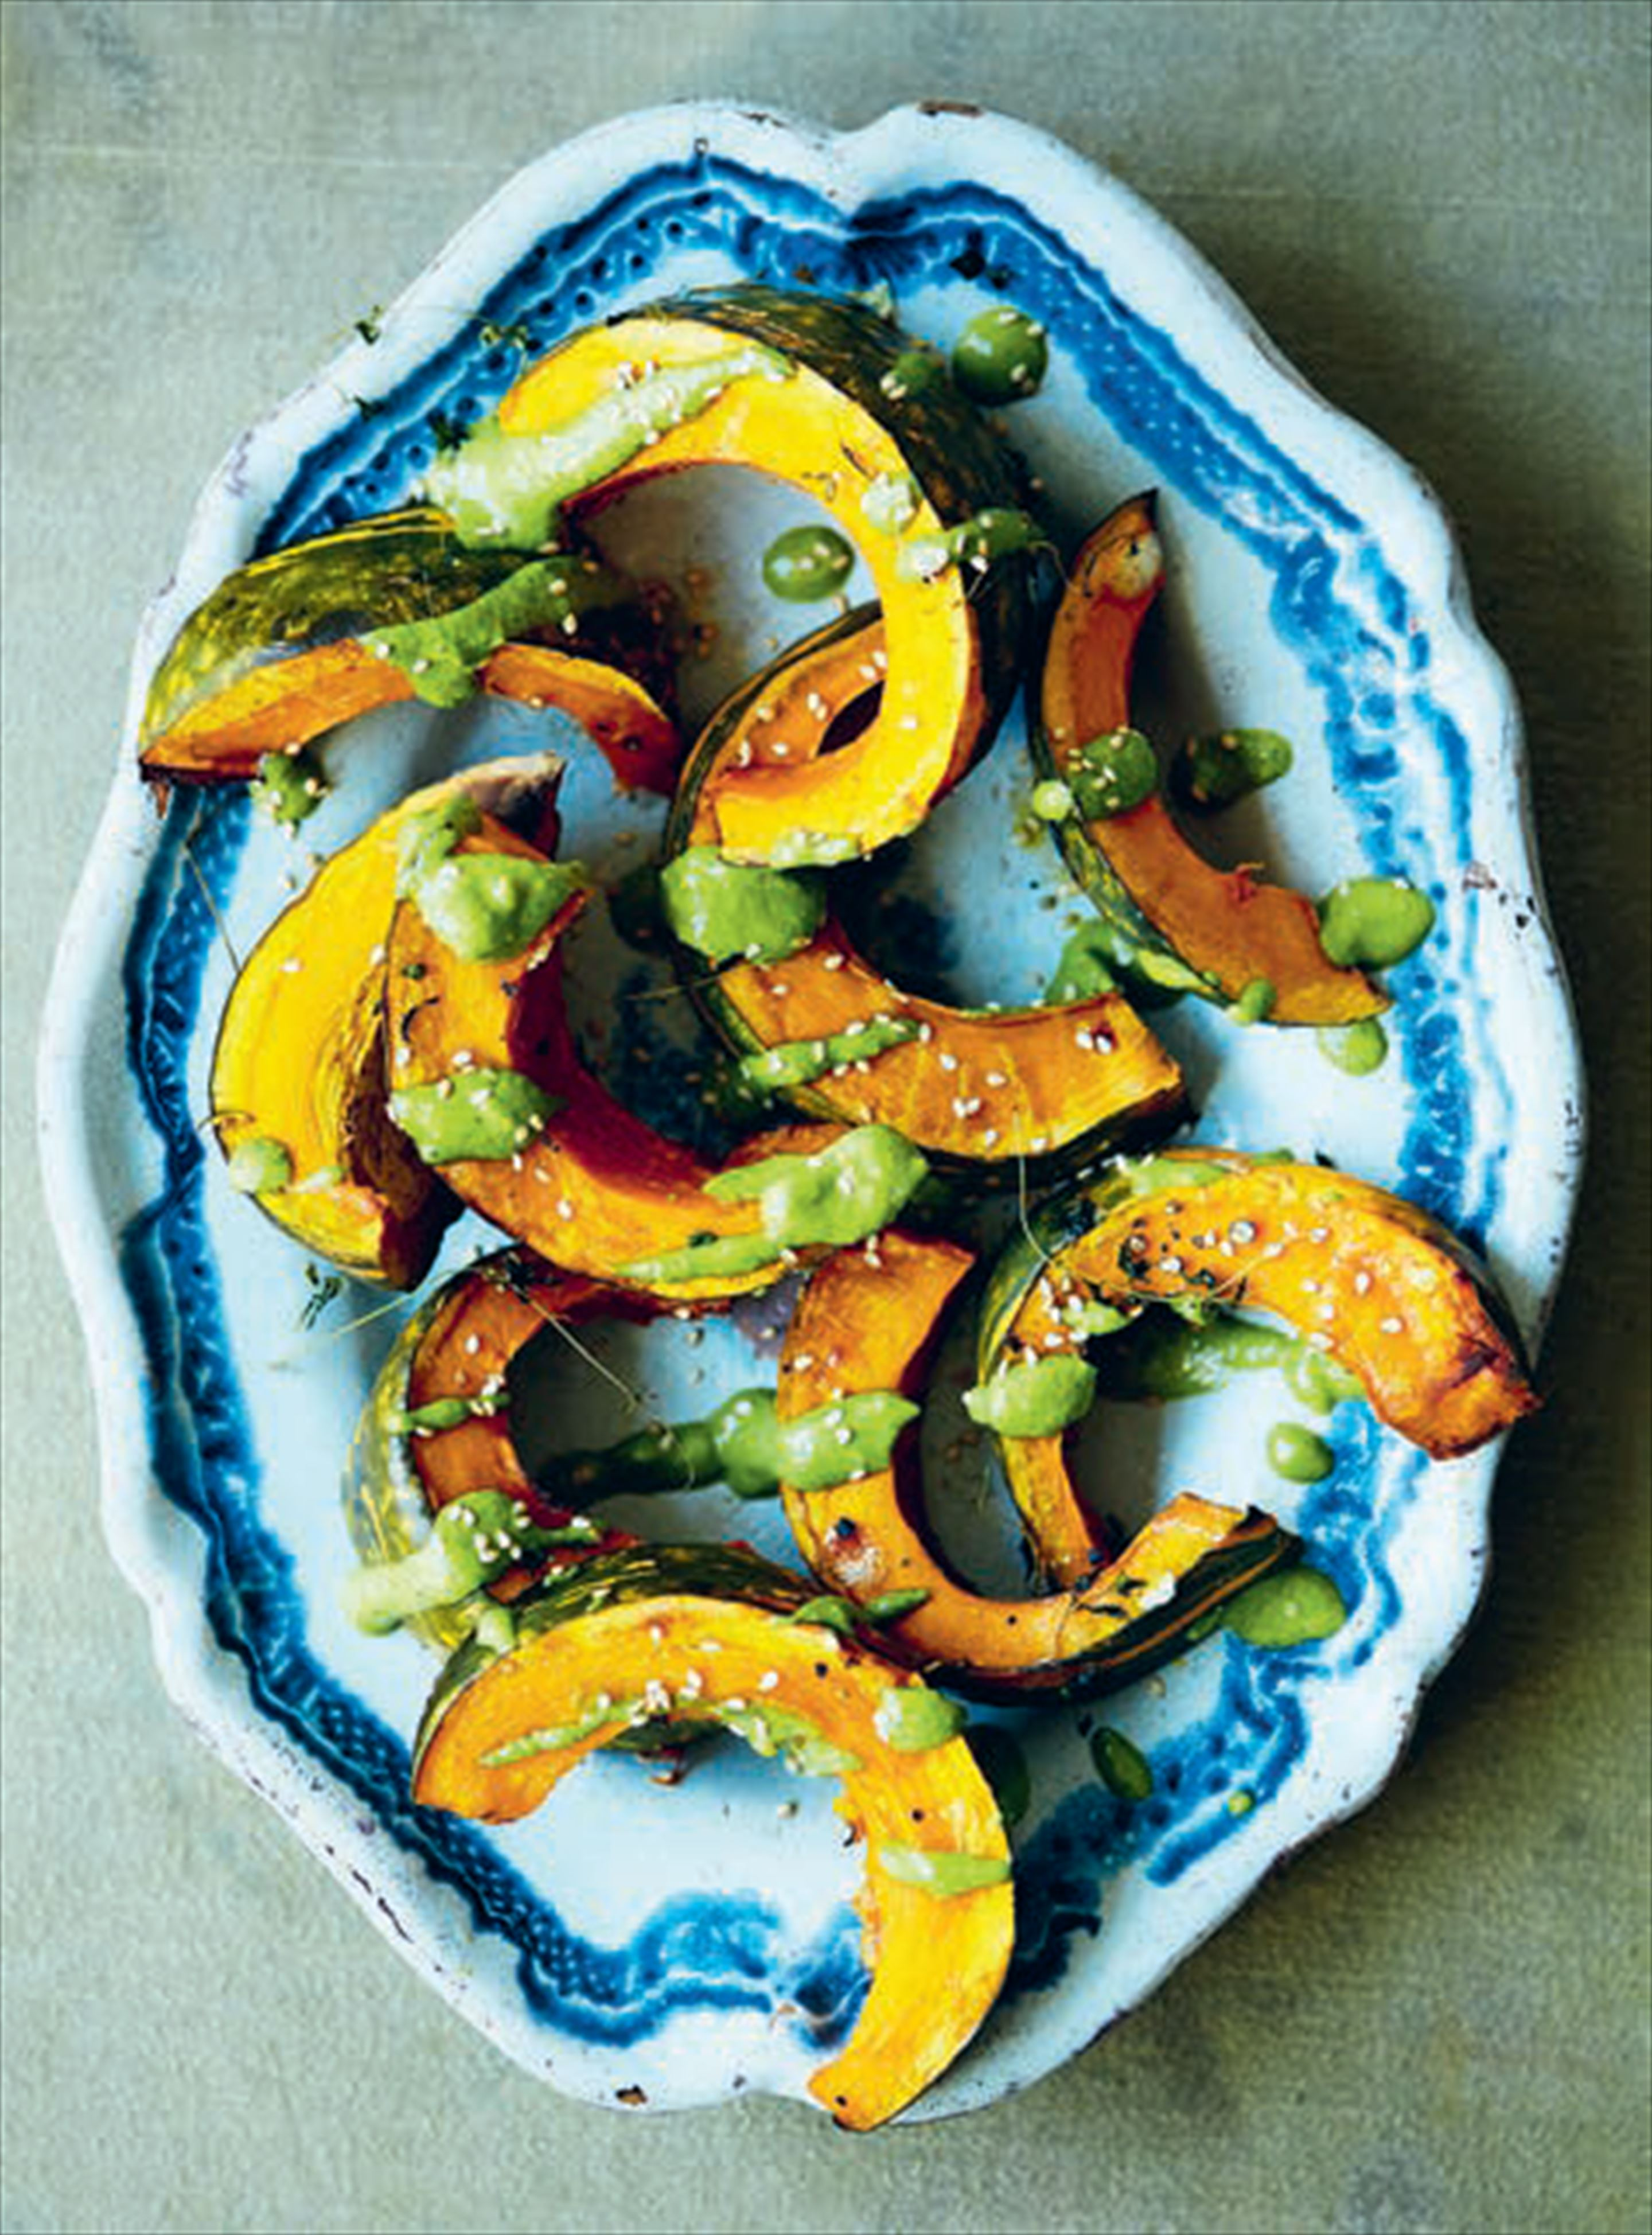 Roasted pumpkin with parsley, dill, tarragon & almond pesto